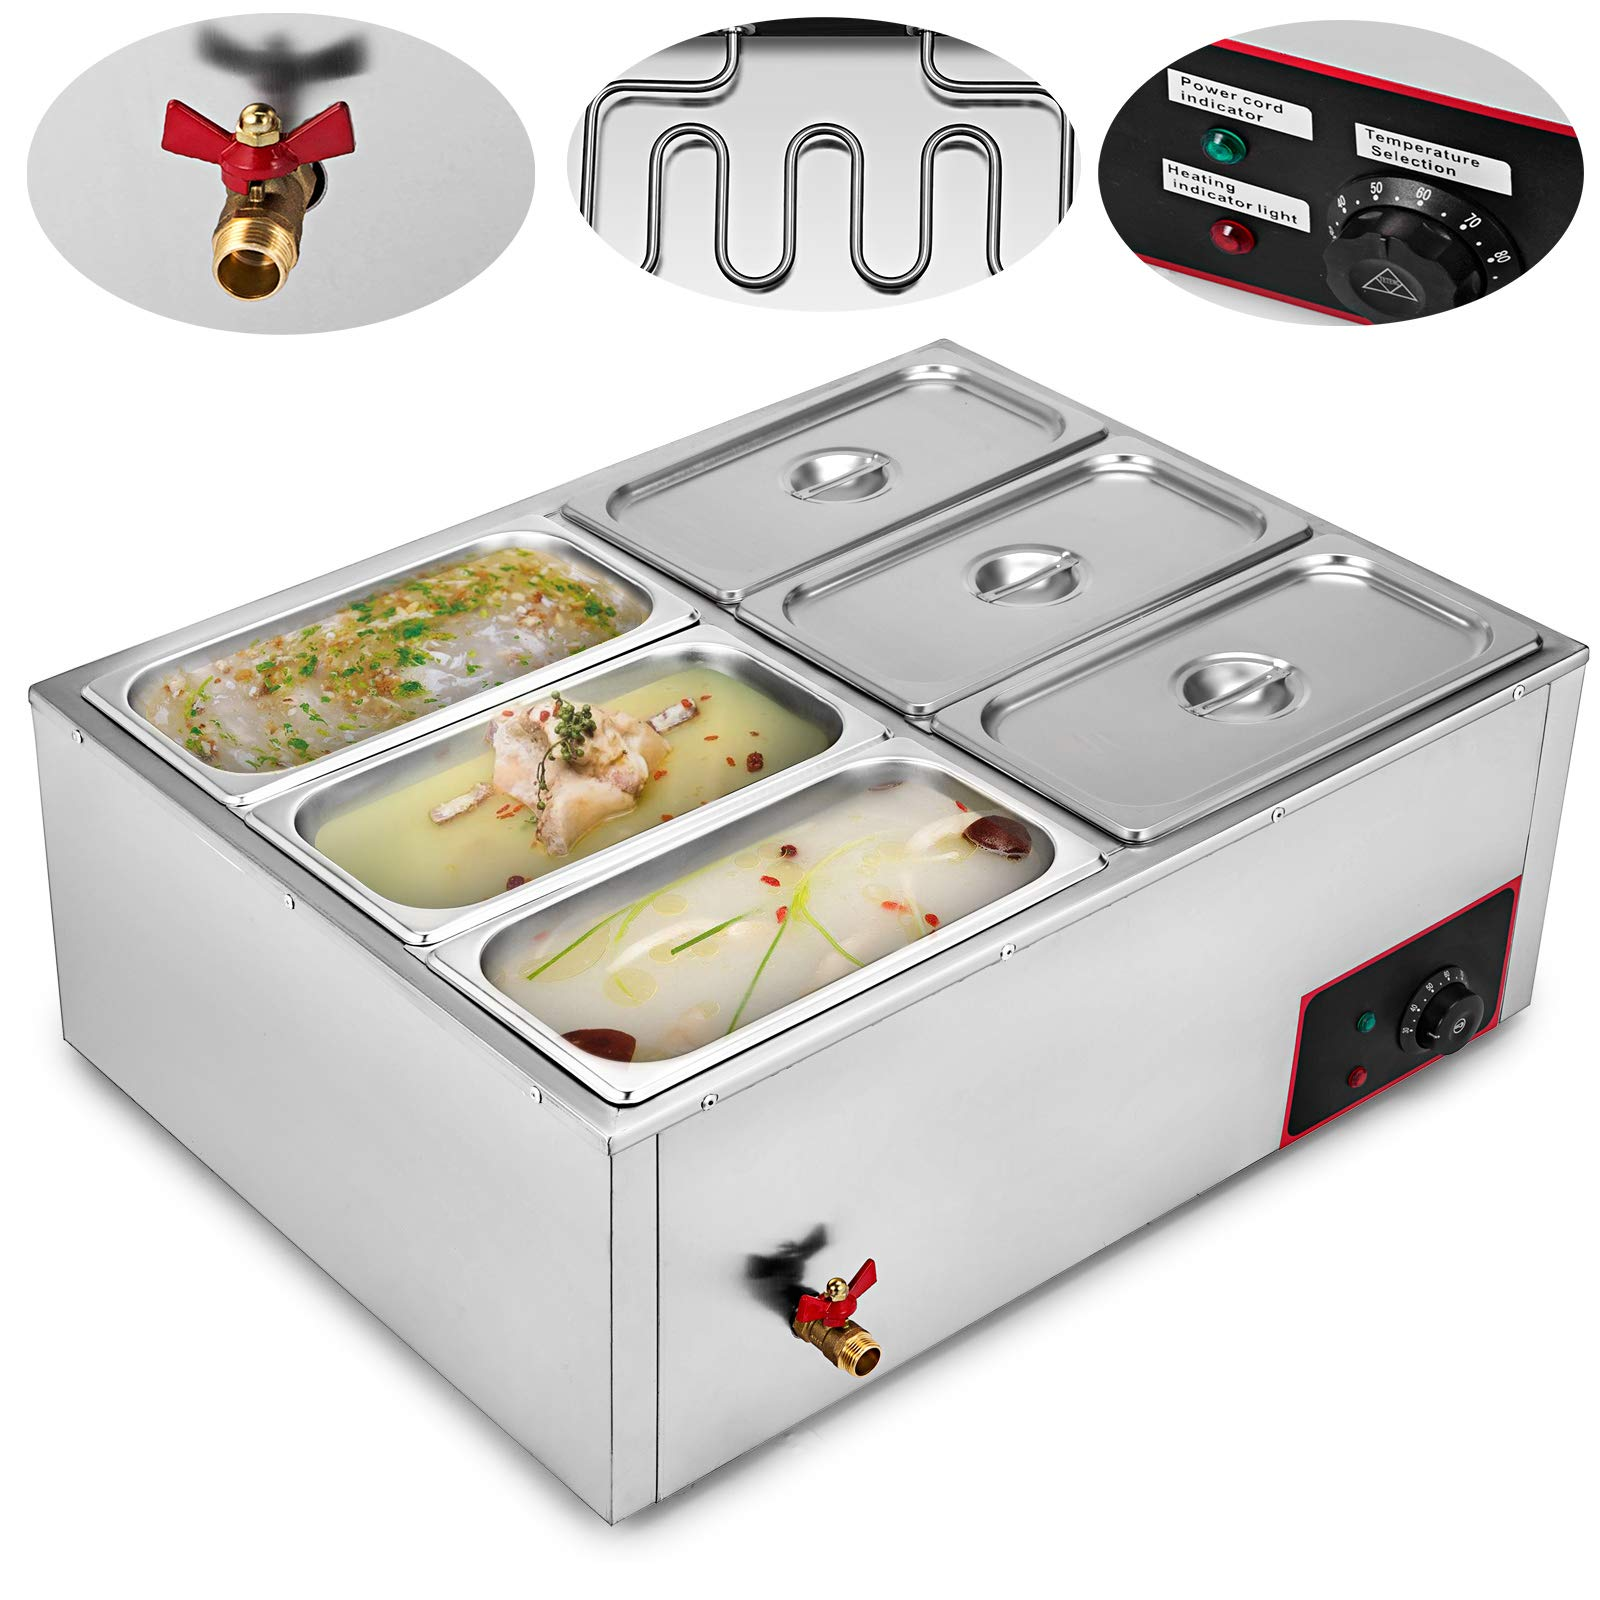 VEVOR Commercial Food Warmer 110V 6-Pan Electric Food Warmer 850W Stainless Steel Bain Marie Buffet Food Warmer Steam Table for Catering and Restaurants by VEVOR